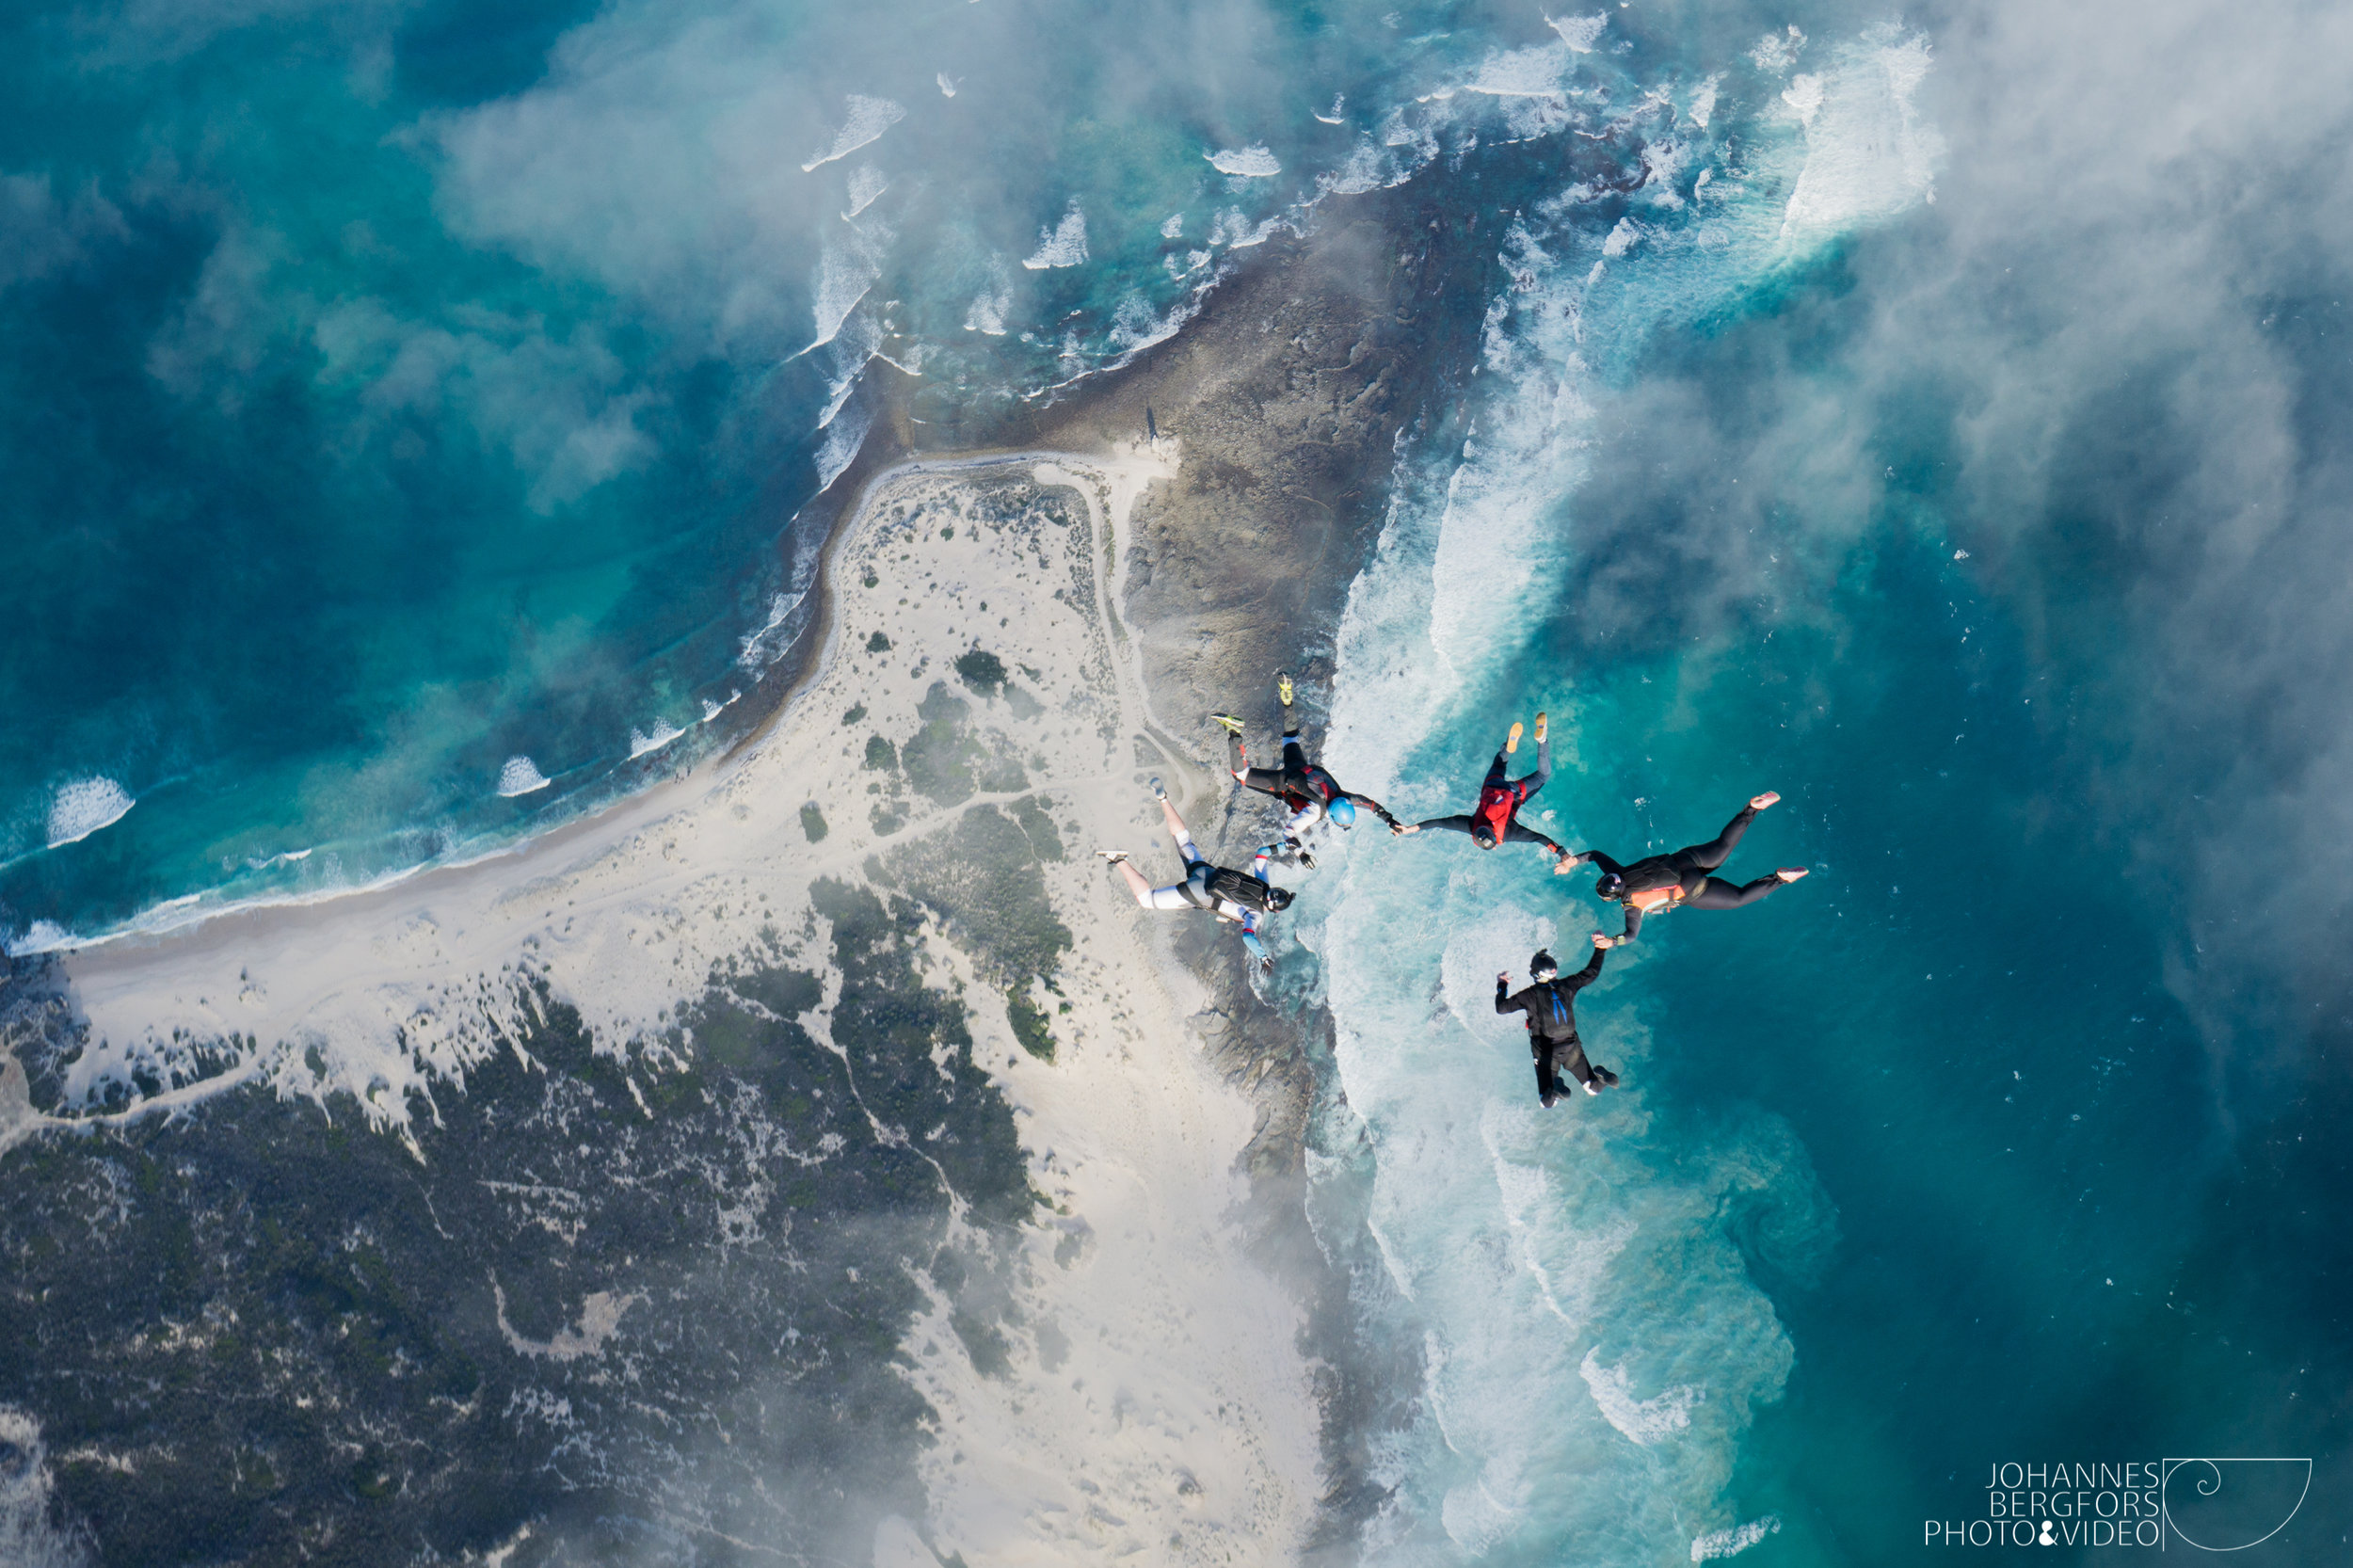 Business as usual today when skydiving near the southernmost tip of the African continent.jpg